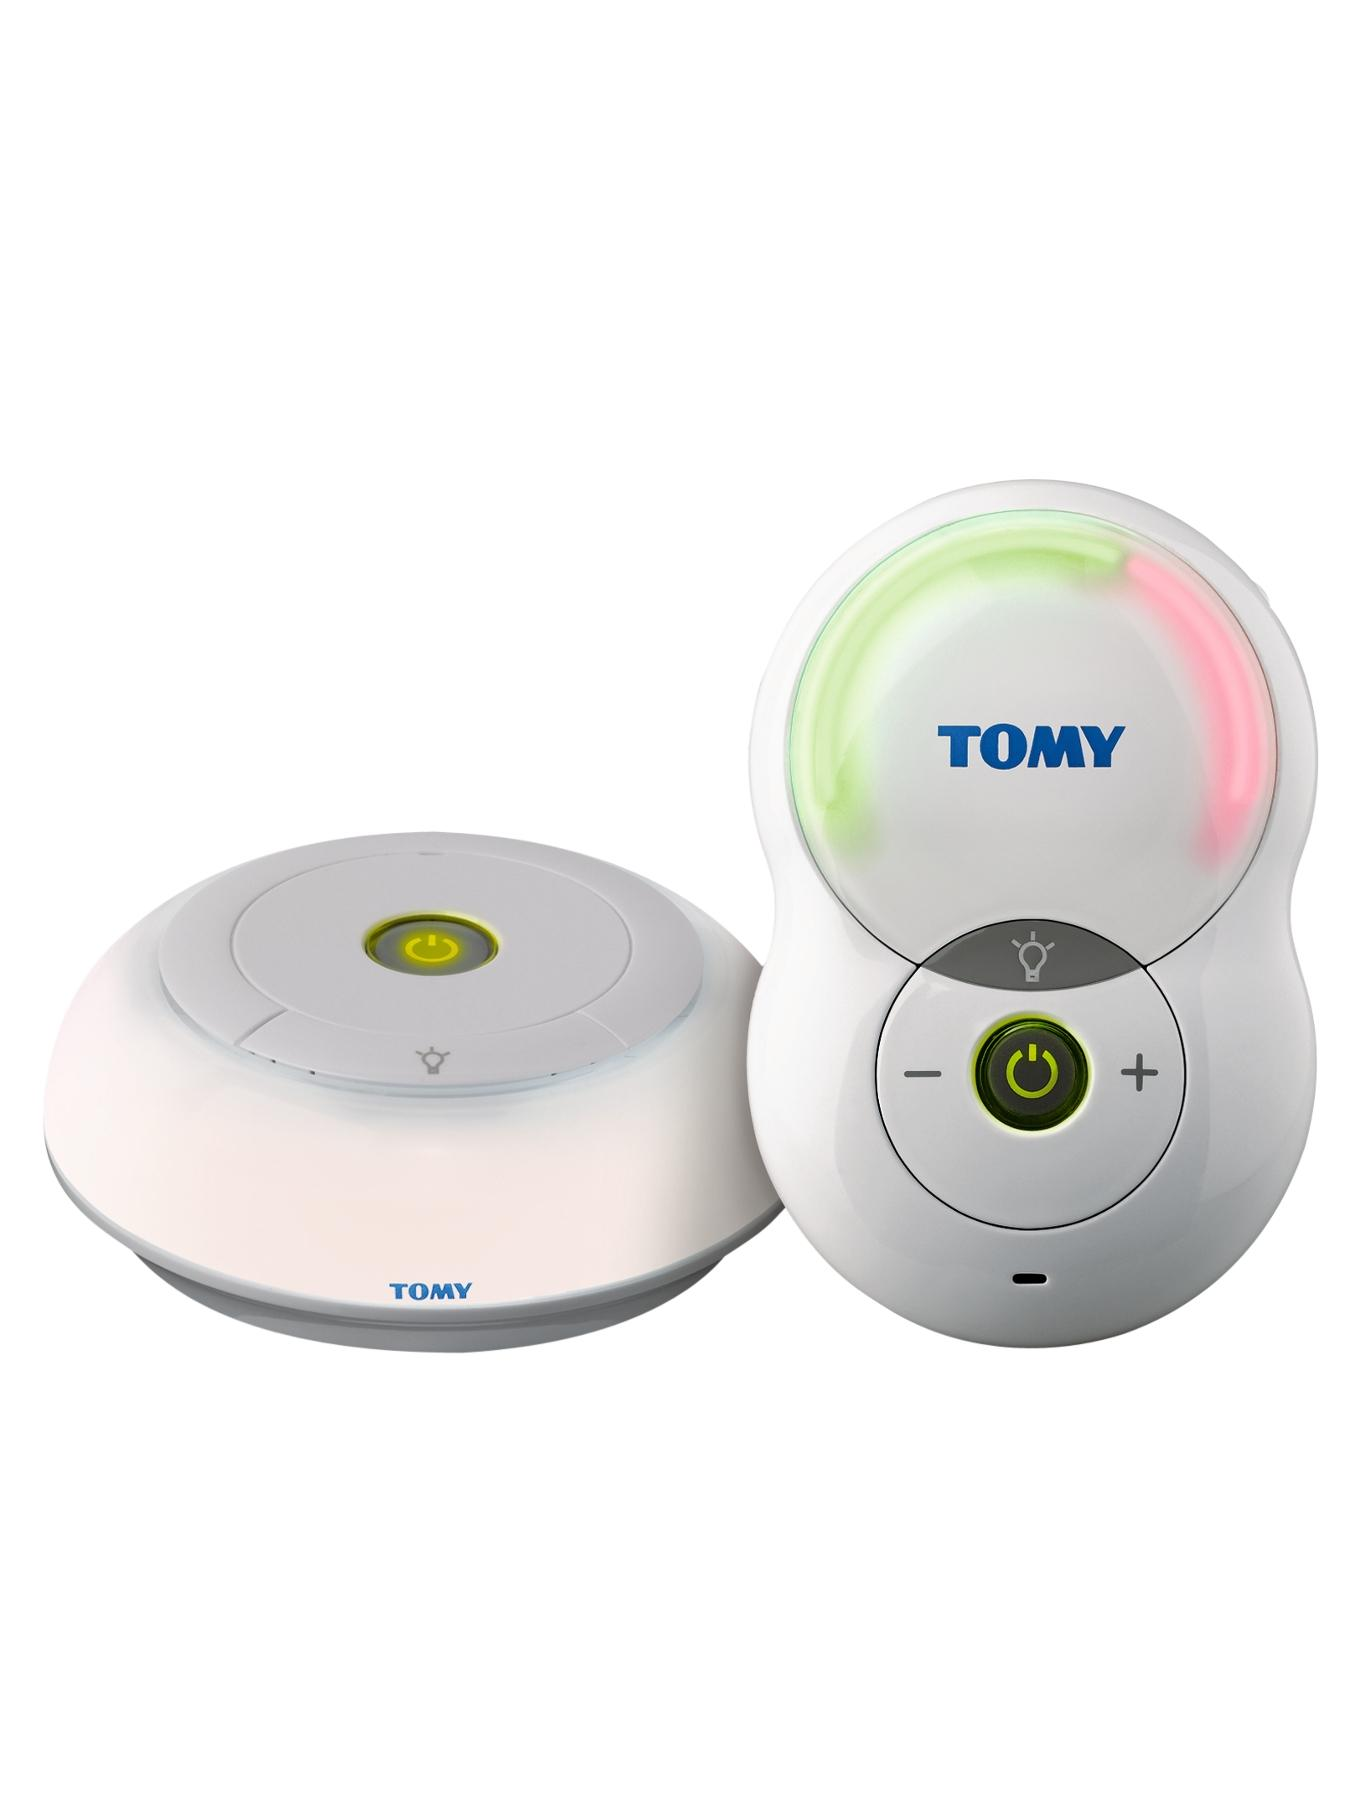 Tomy Digital Baby Monitor -TF500